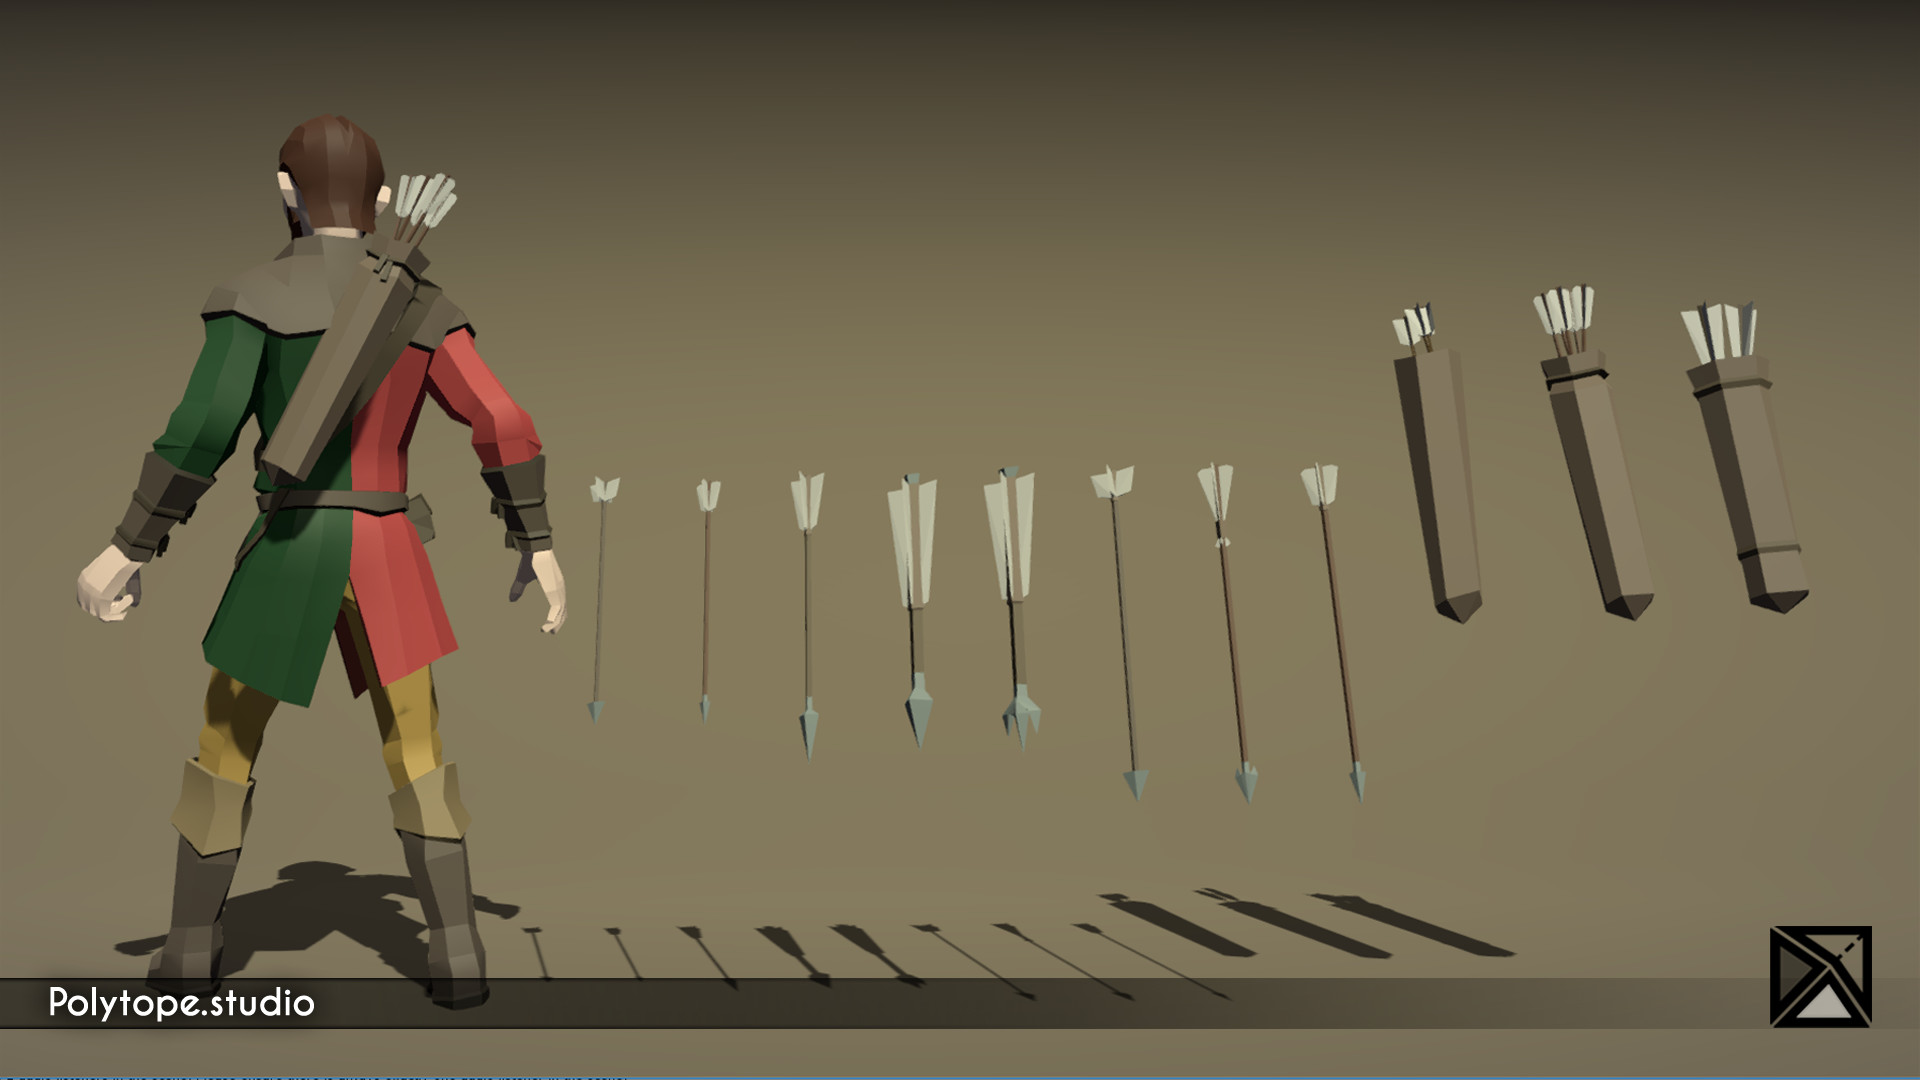 Polytope studio pt medieval lowpoly weapons arrow quiver